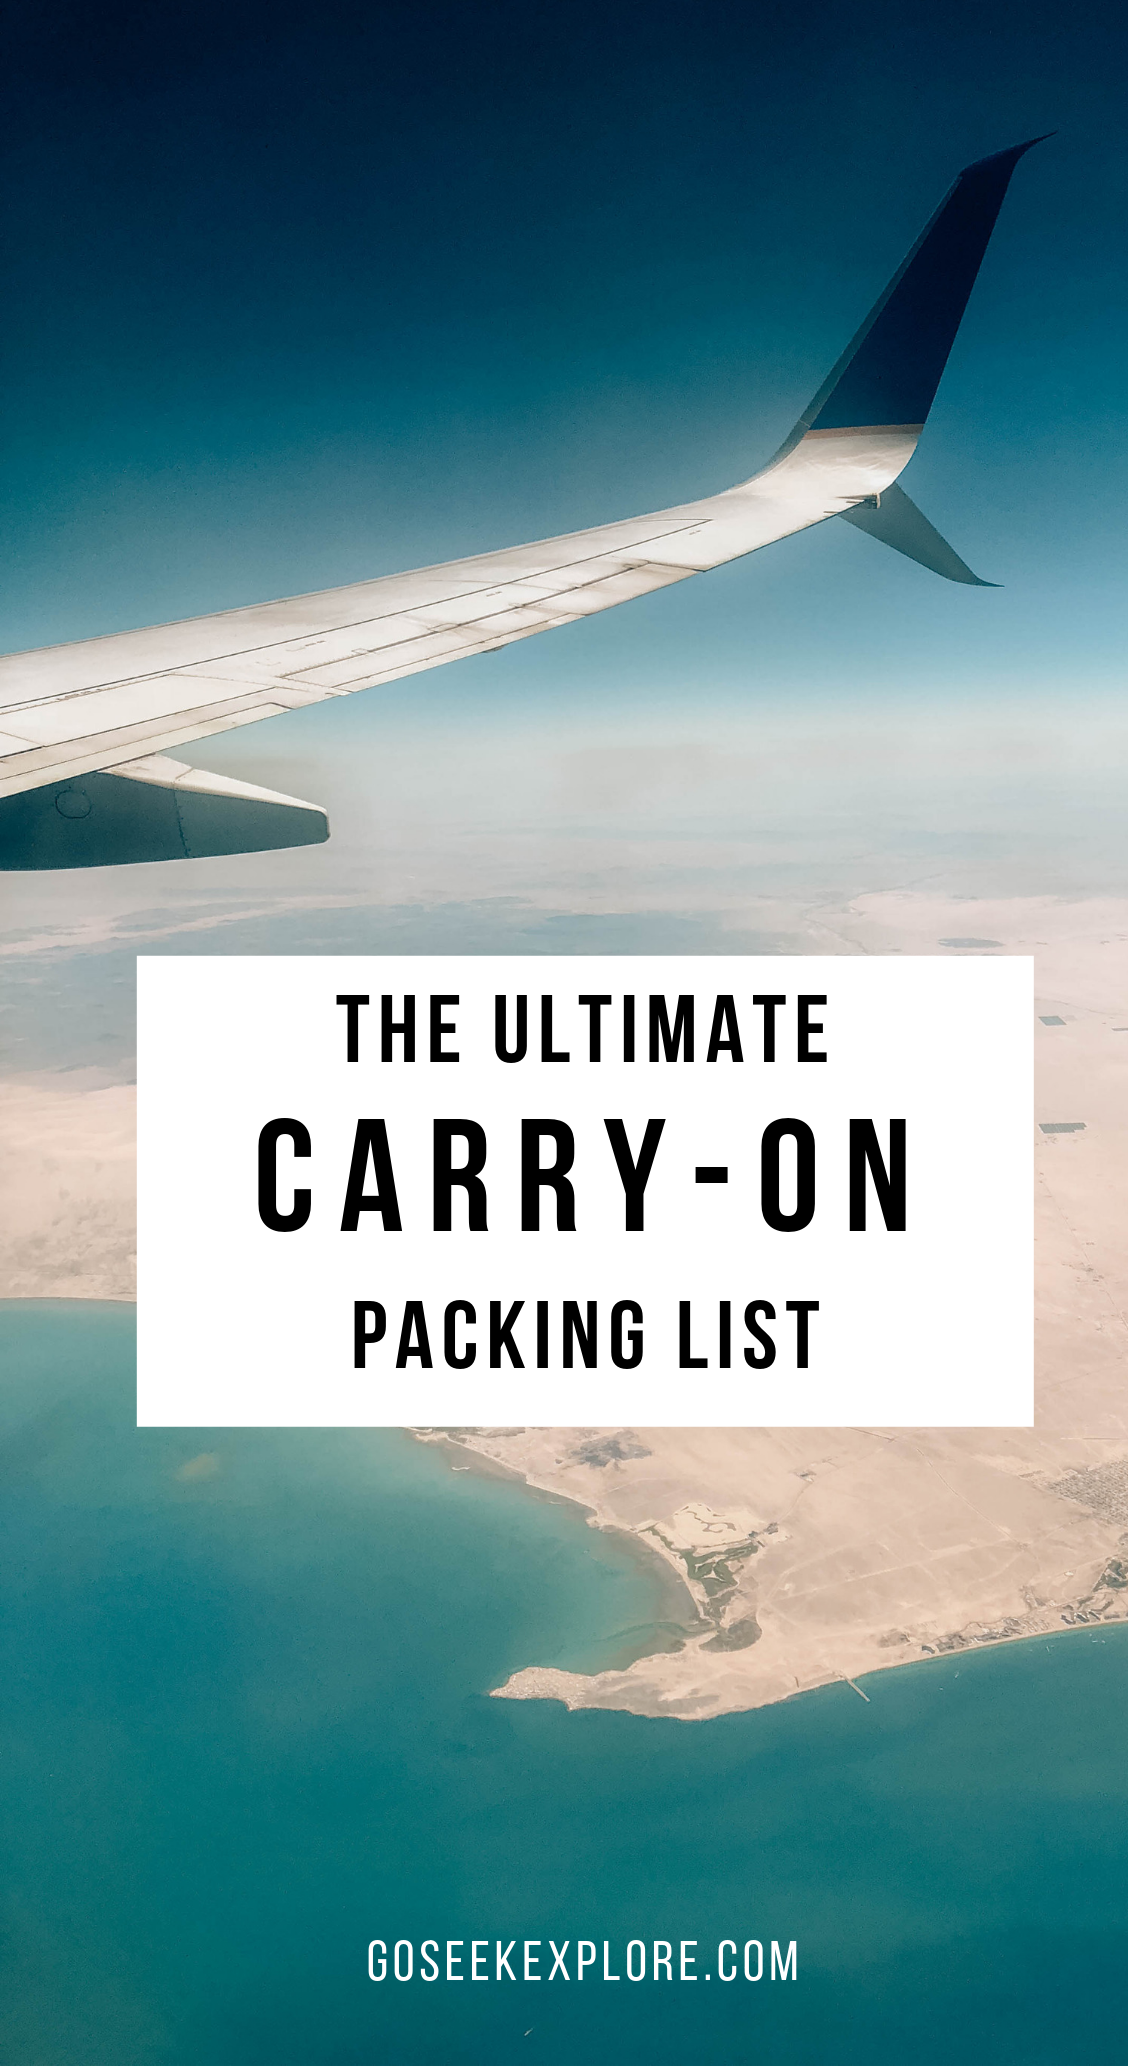 The Ultimate Carry-on Packing List! Everything you need in your carry-on for smooth travel, especially in the off-chance your checked bag gets lost or delayed. Use this list as a checklist for every trip! goseekexplore.com #traveltips #travelhacks #packingtips